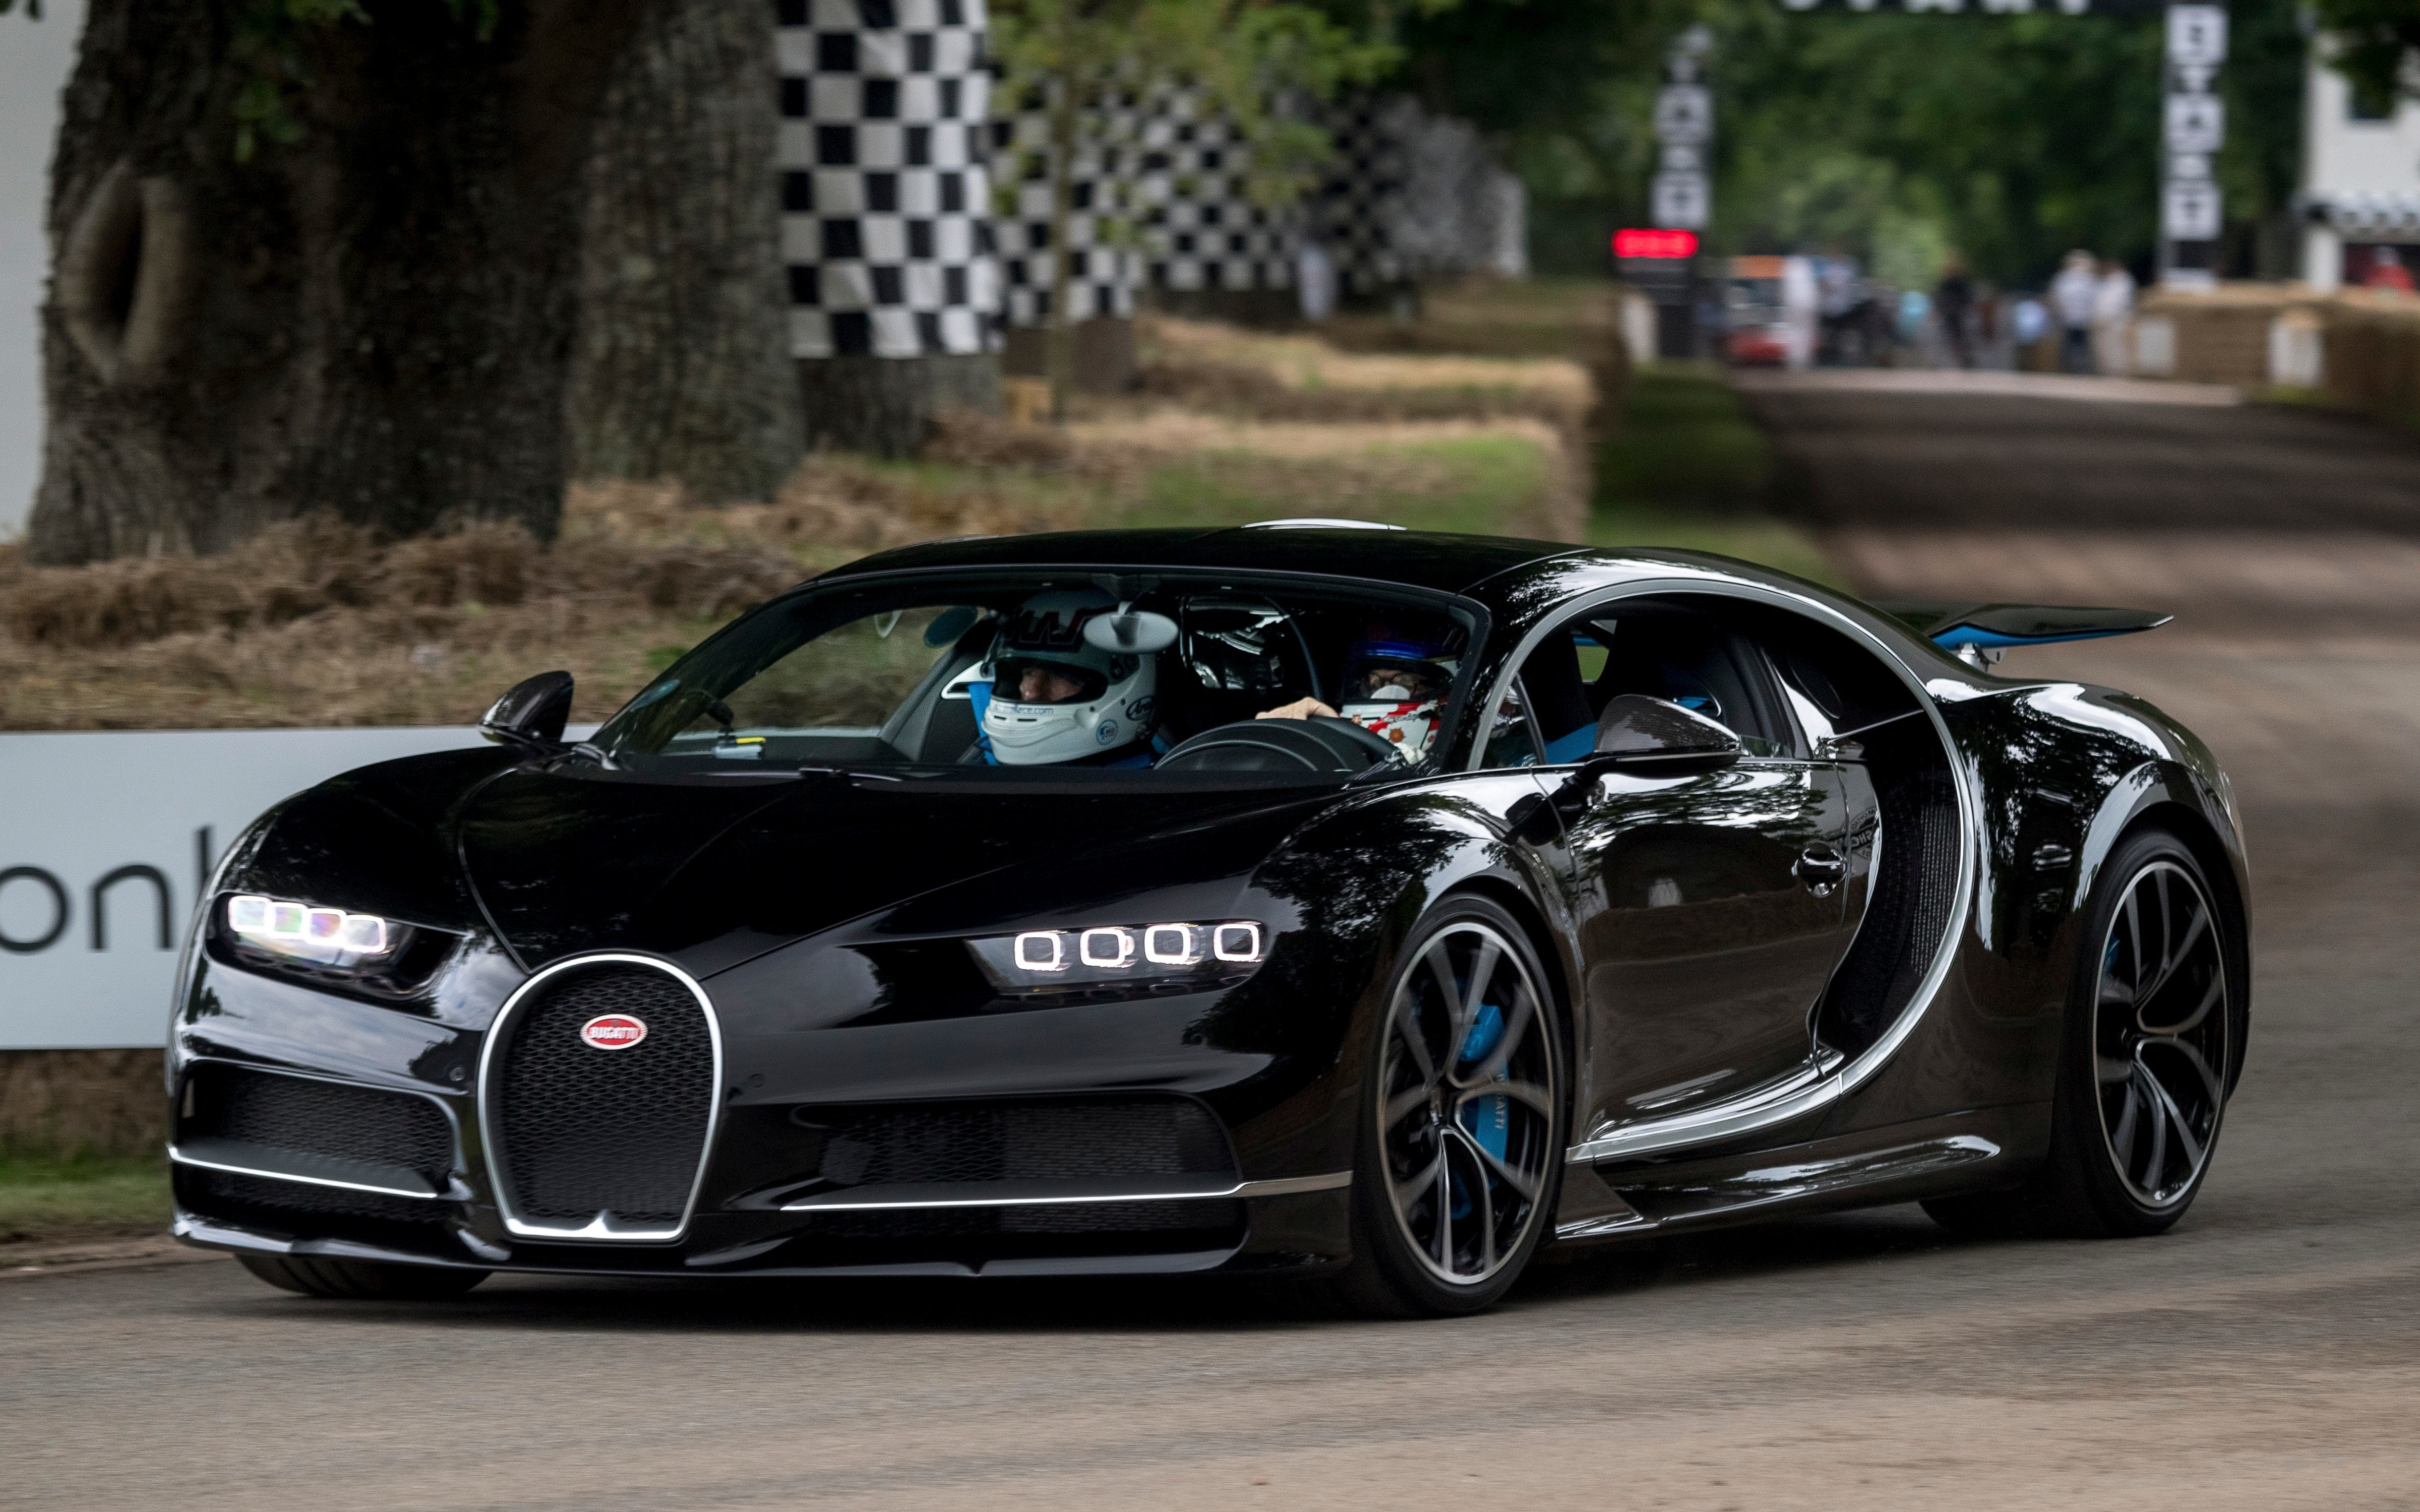 Introducing The New Bugatti Chiron Divo Which Is Having Over 1500 ...